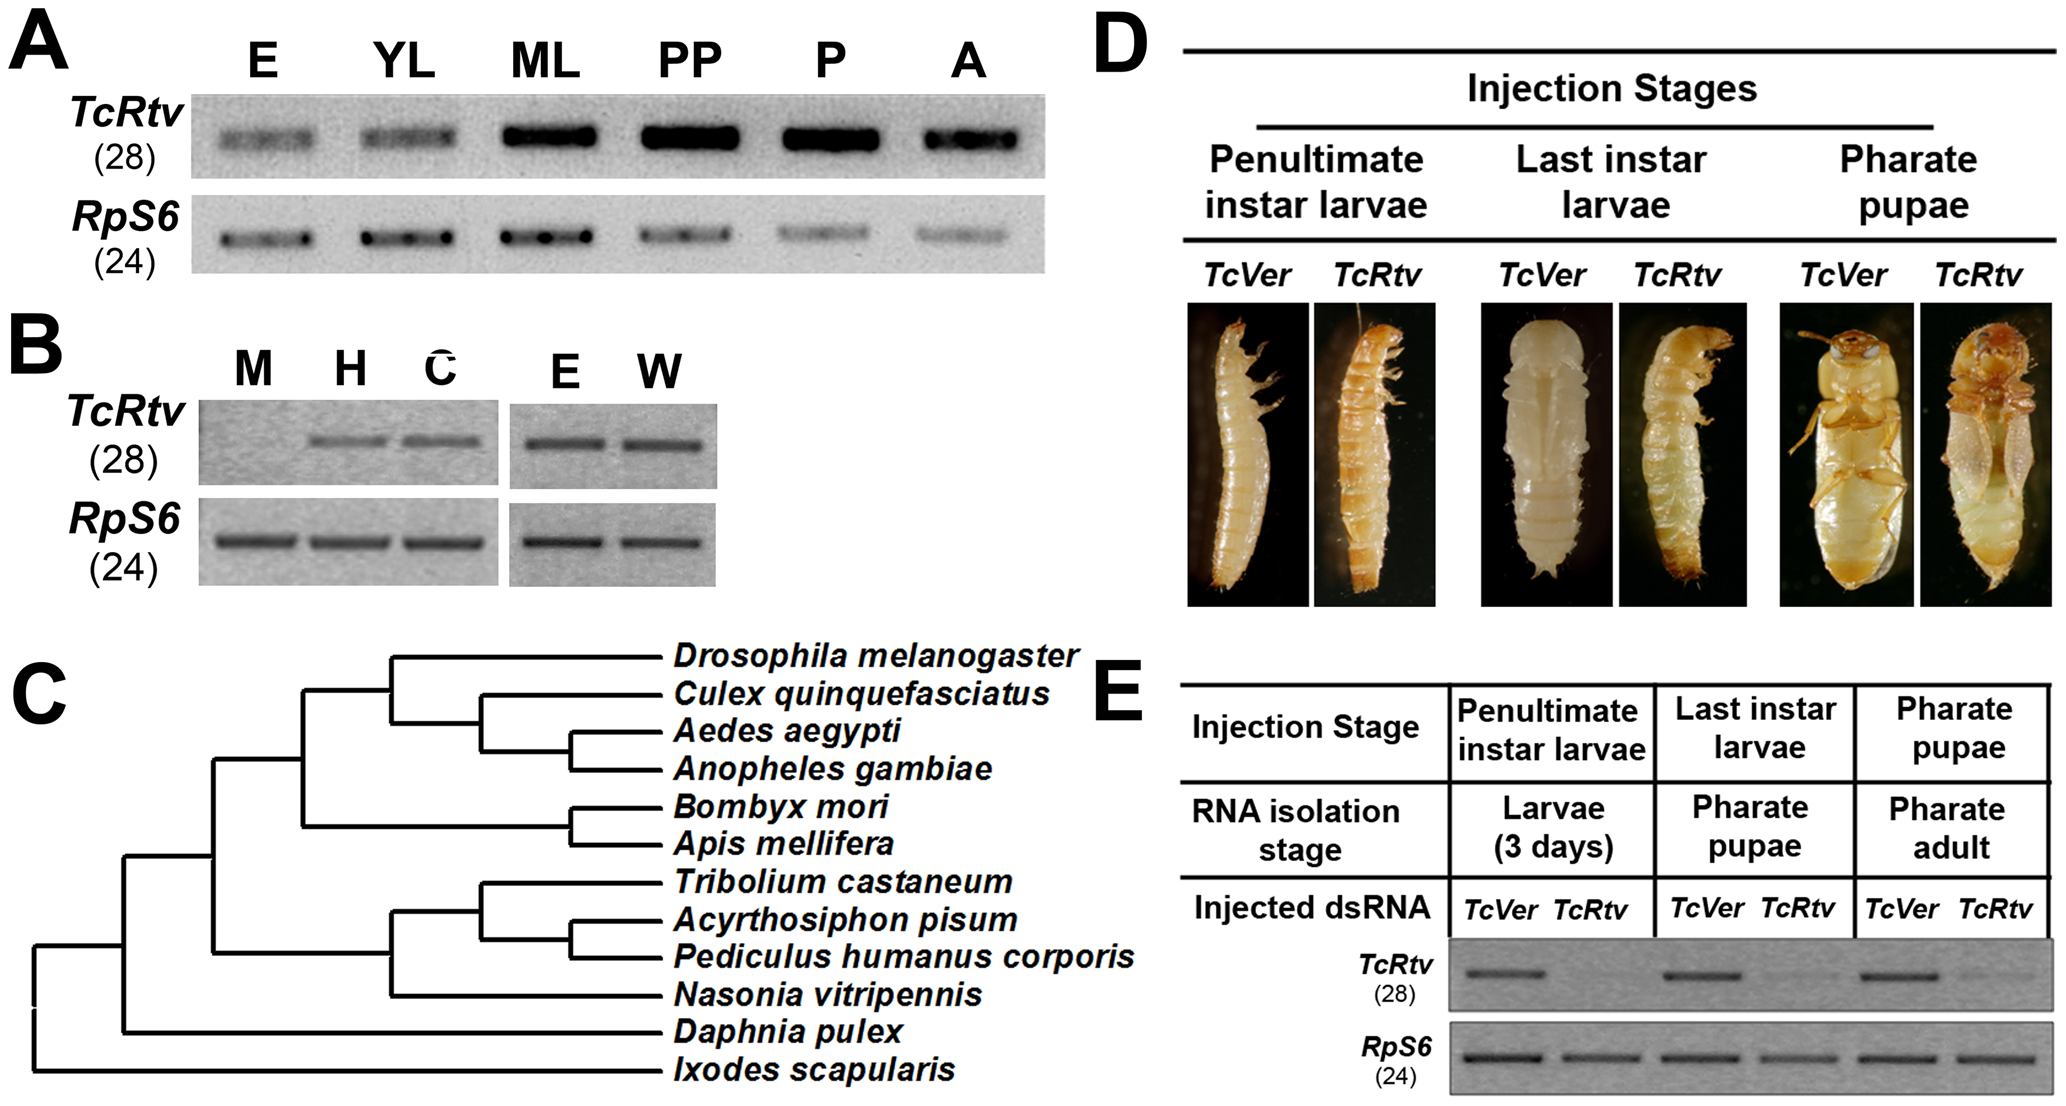 TcRtv is a conserved protein required for insect molting.